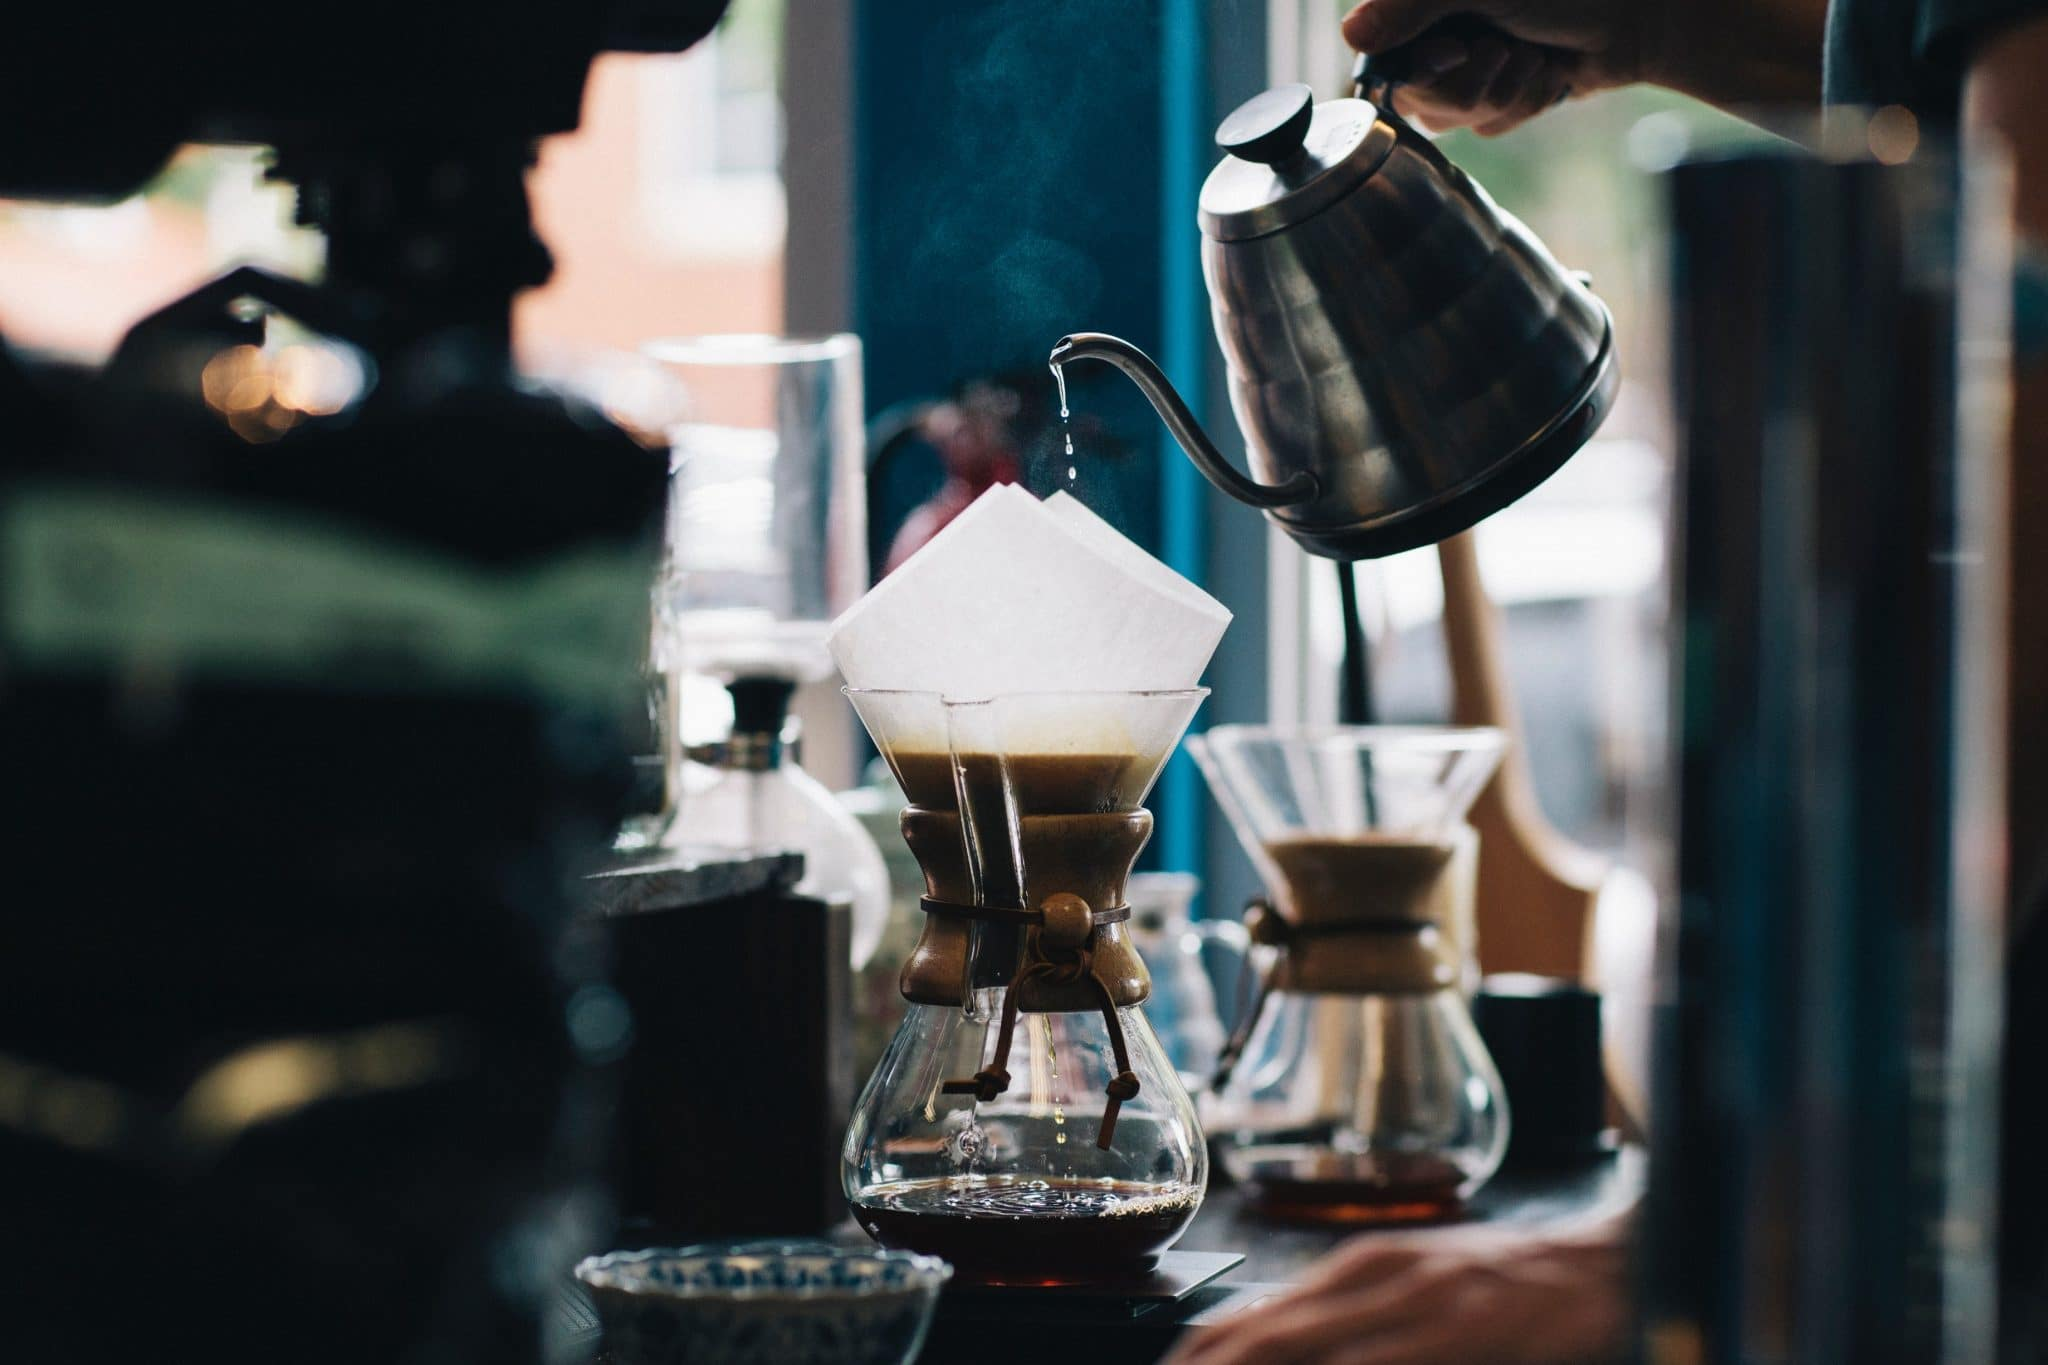 Qualities you need to look for in a coffee supplier